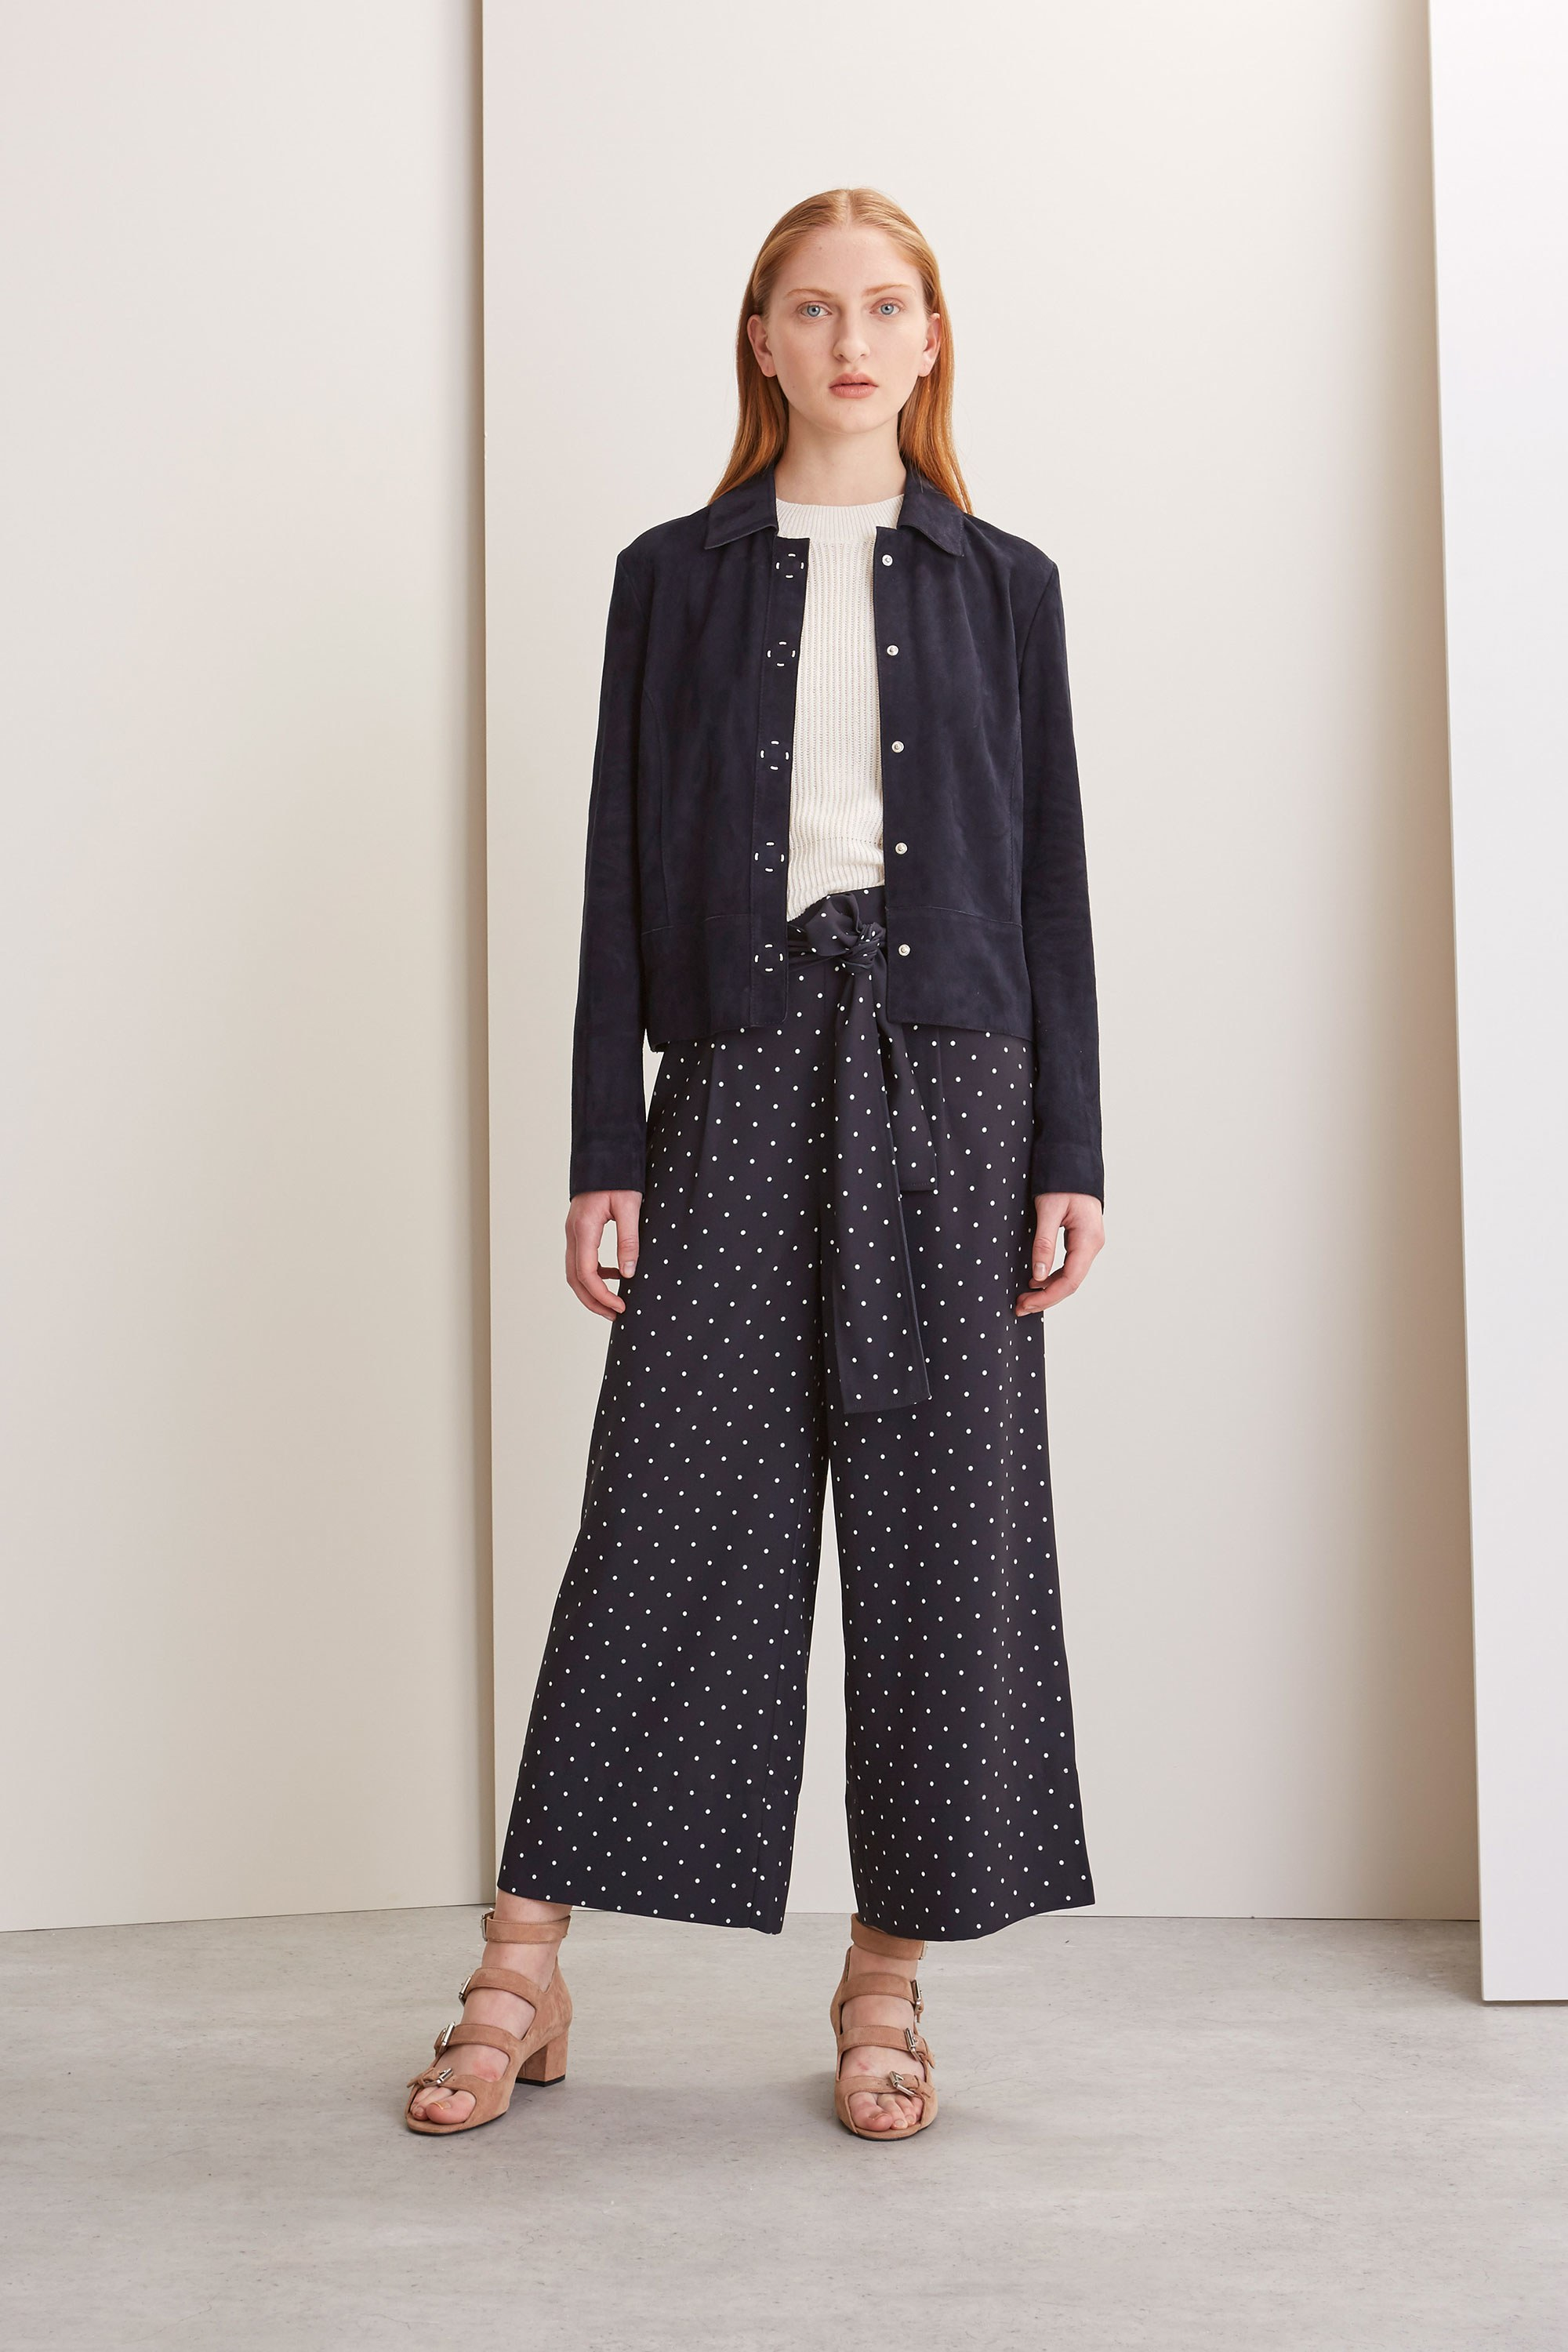 23-whistles-pre-fall-17